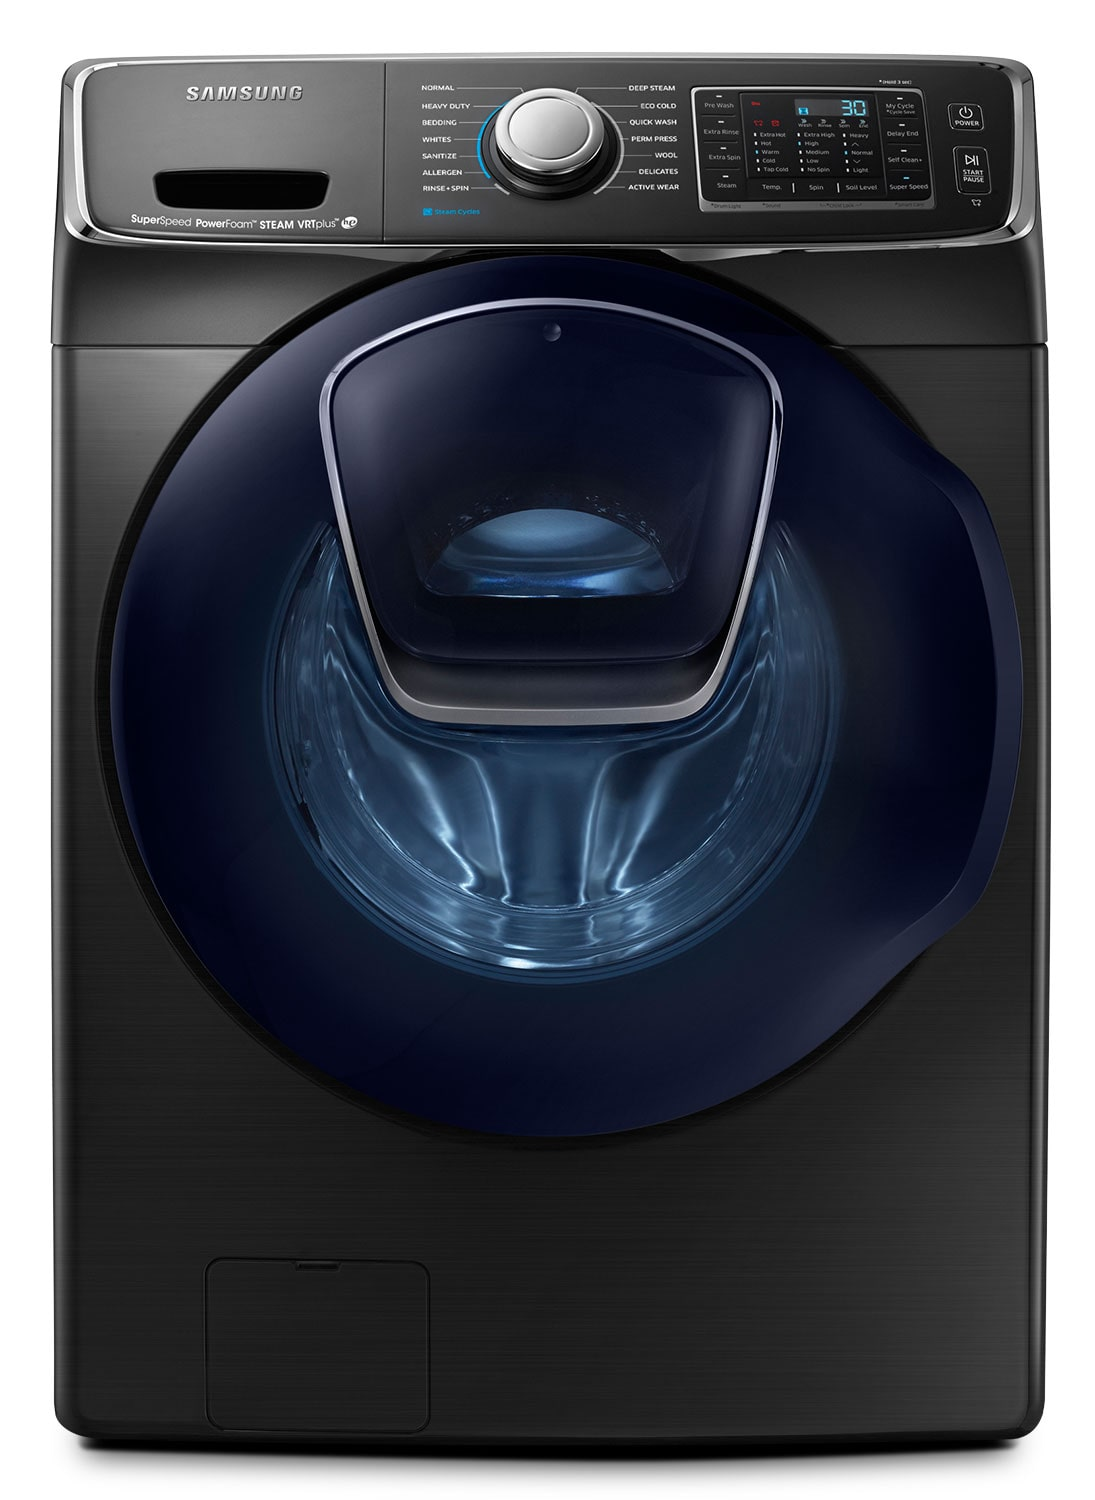 Samsung Black Stainless Steel Front-Load Washer (5.8 Cu. Ft.) -WF50K7500AV/A2